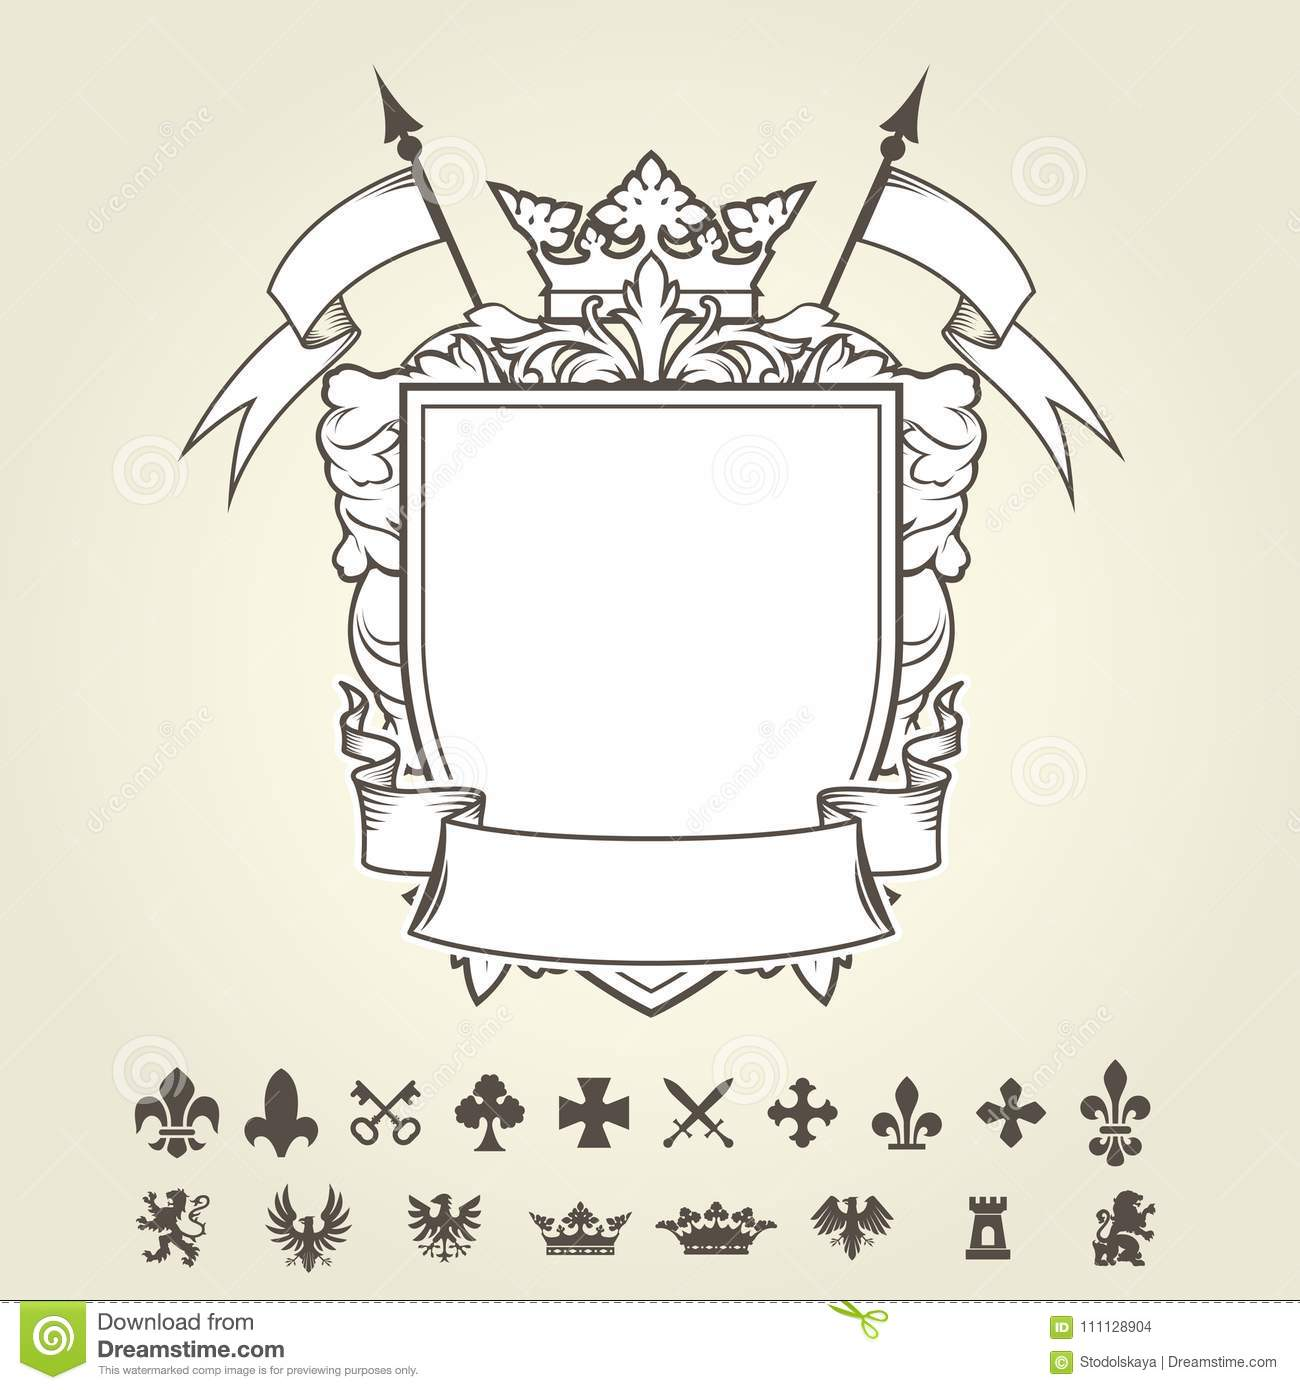 Blank Template Of Coat Of Arms